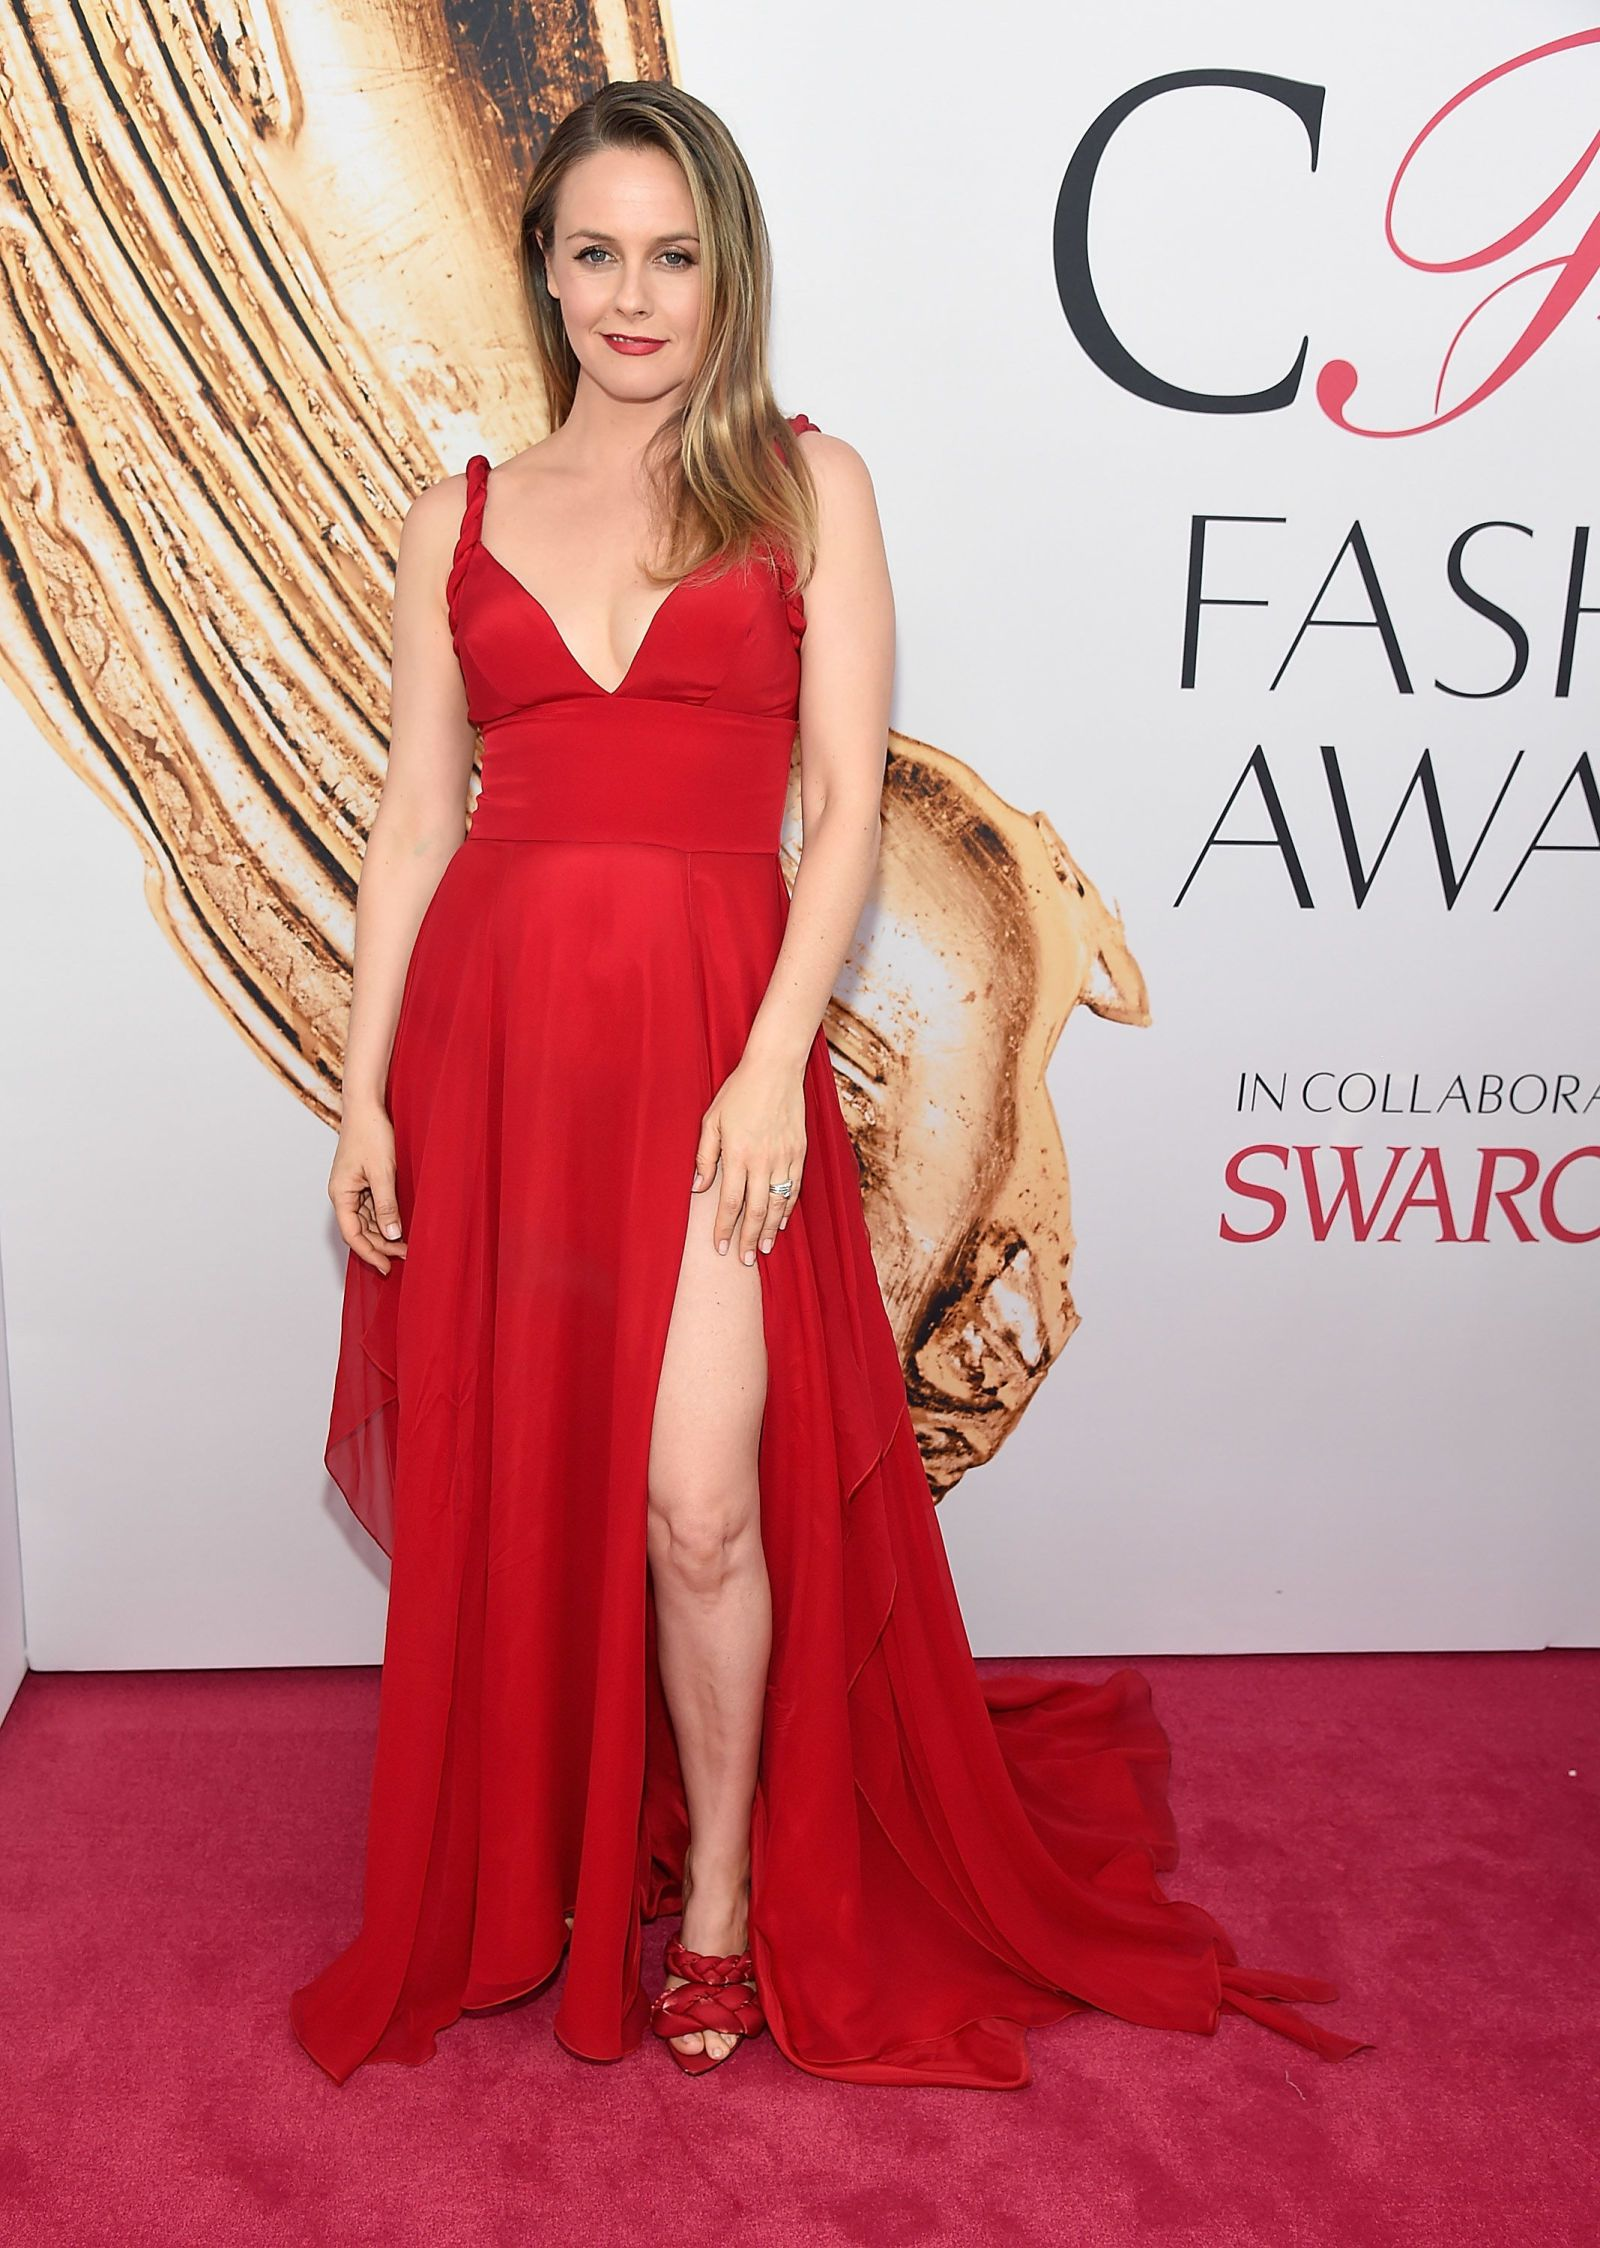 Alicia Silverstone Channels Cher Horowitz At The Cfdas Celebrity Style Red Carpet Red Slip Dress Red Carpet Fashion